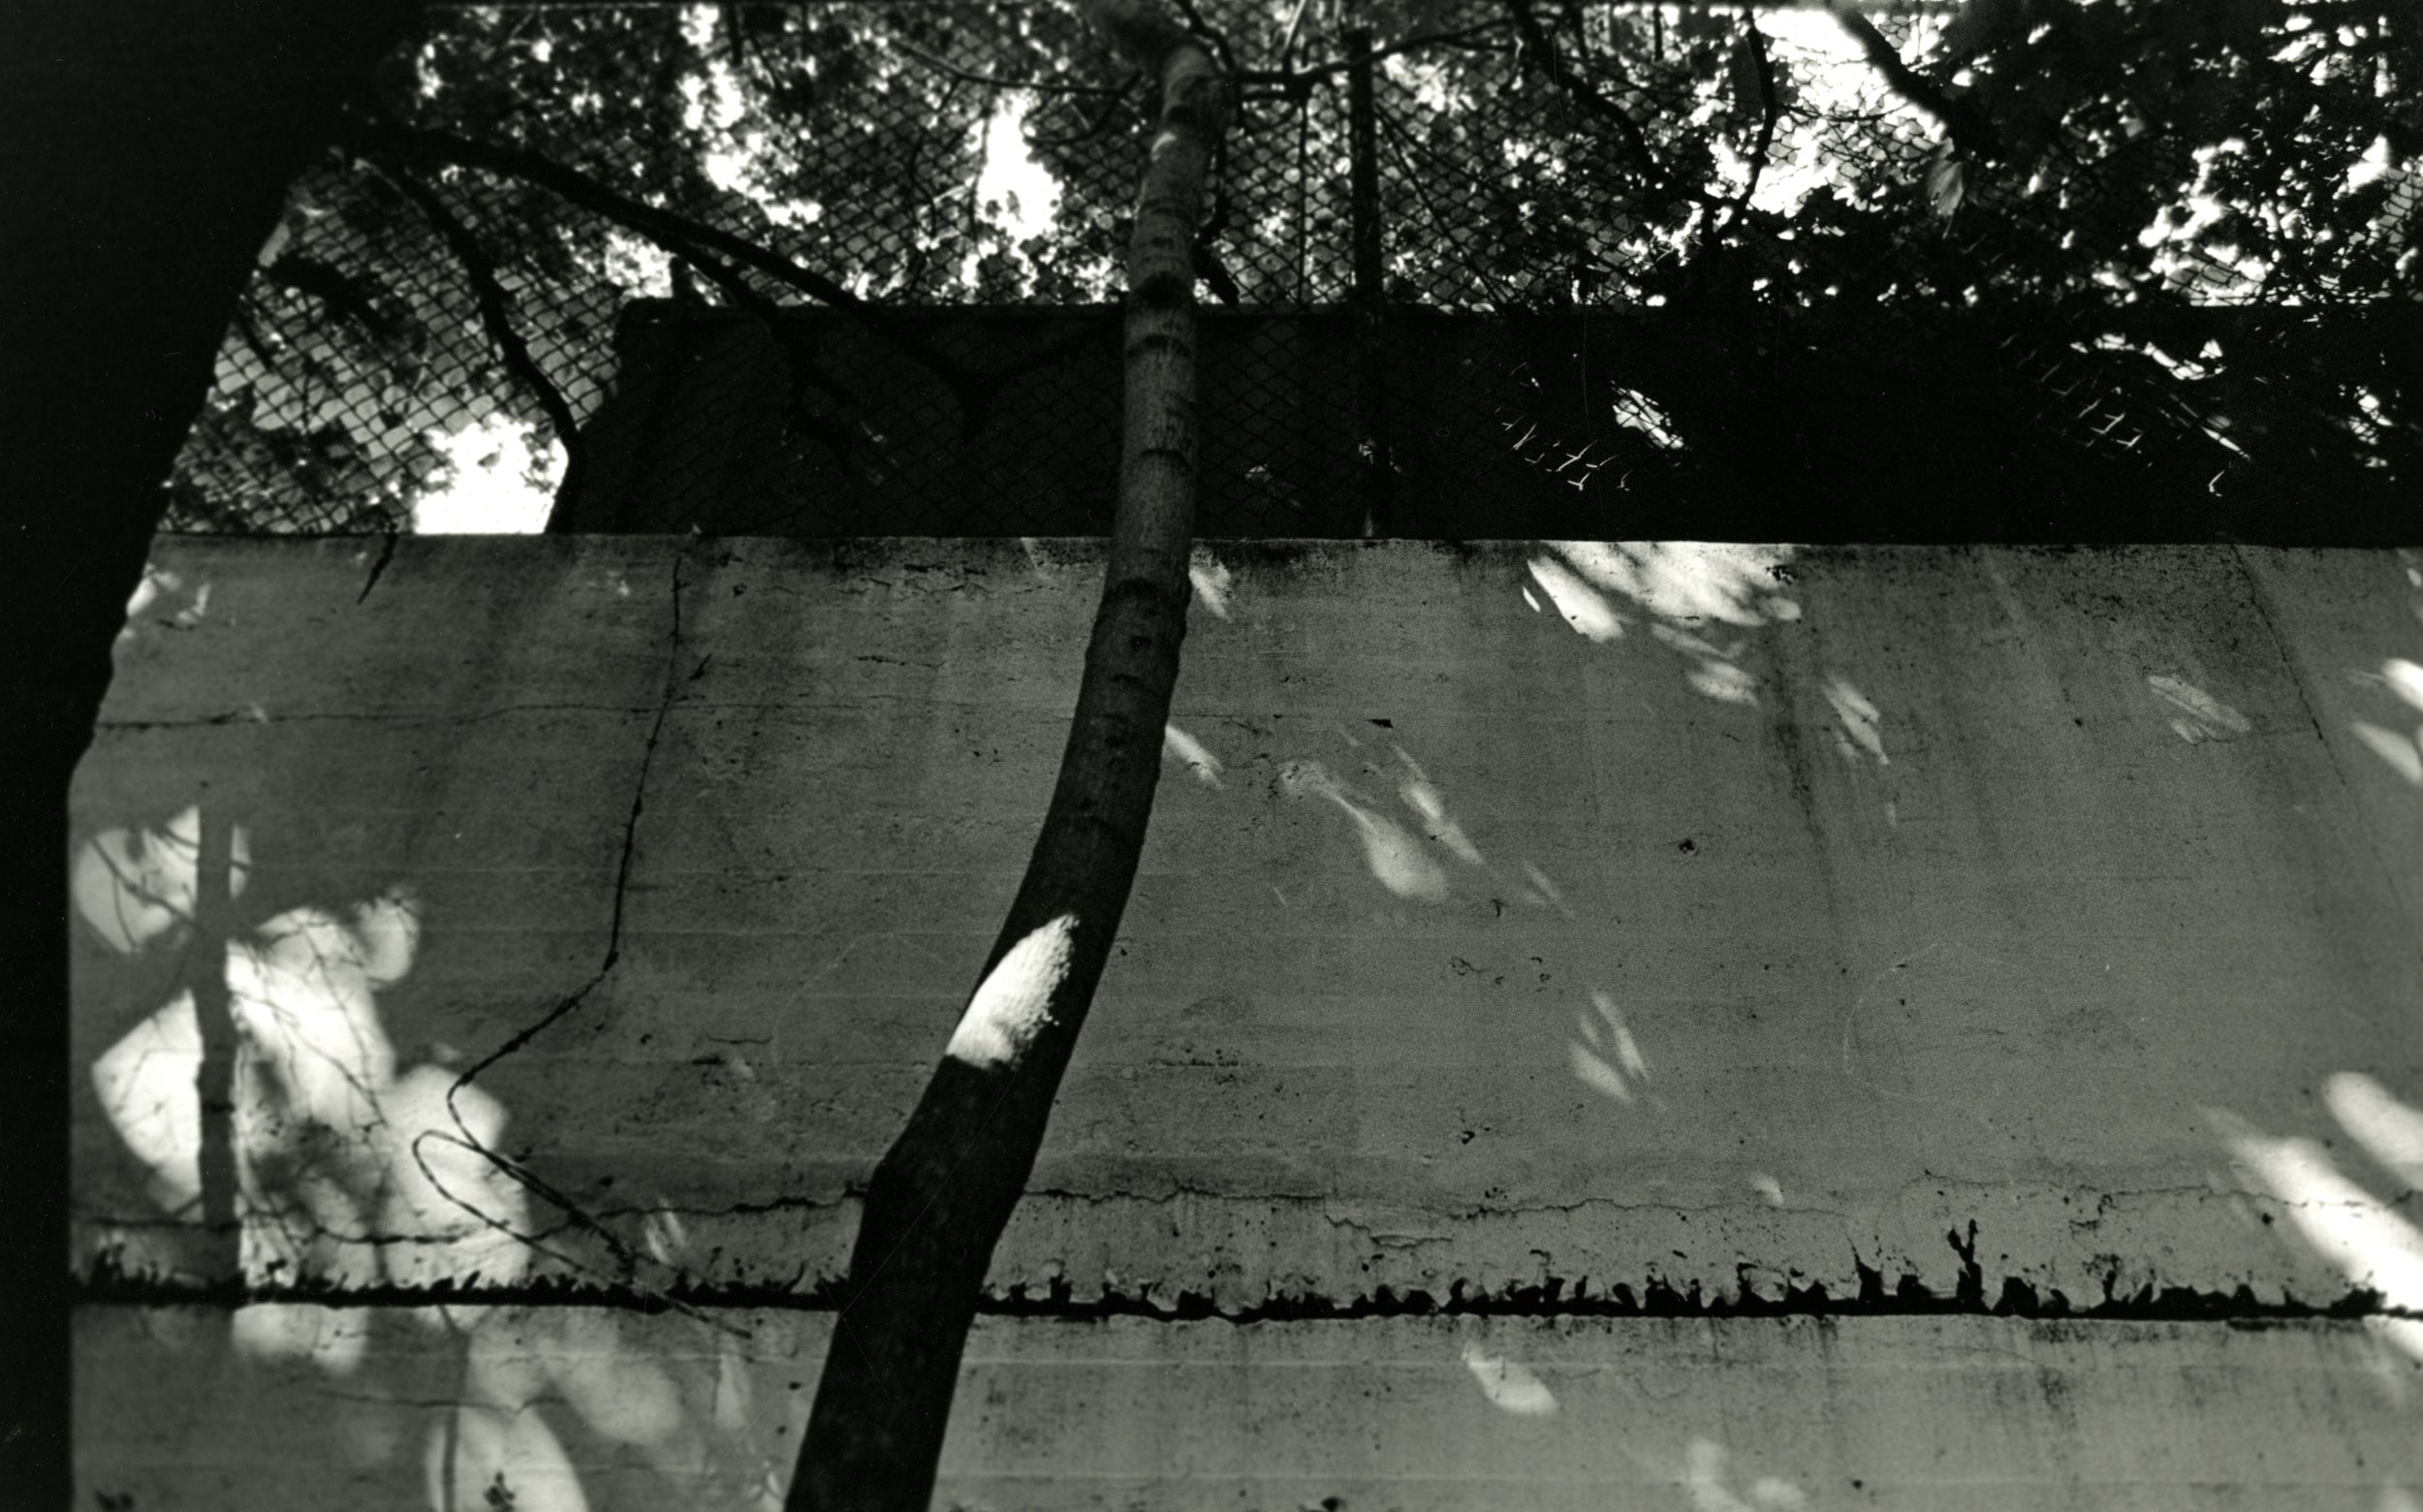 35mm black and white photograph, 2012